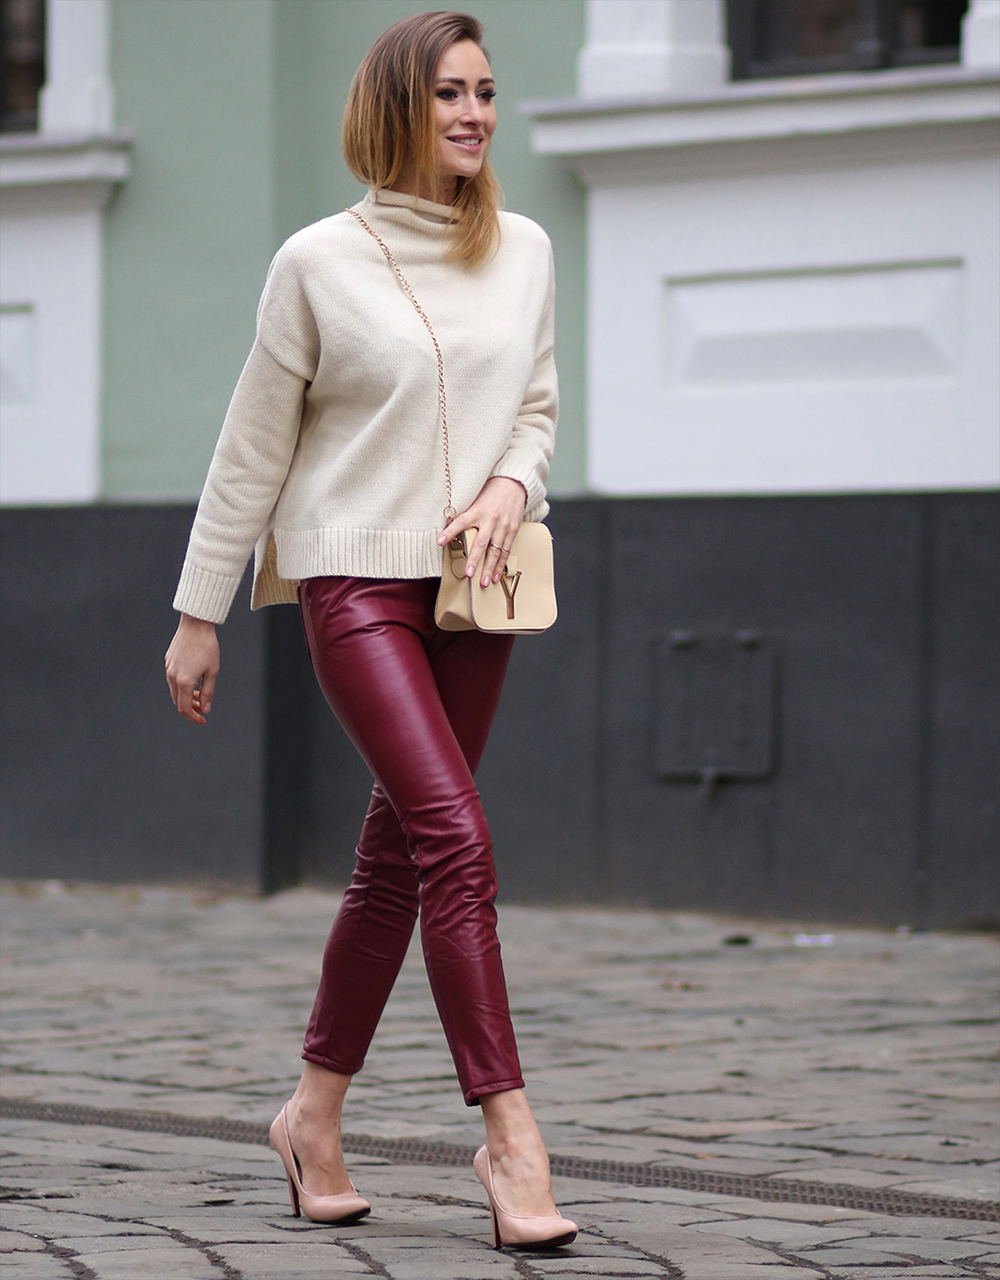 burgundy leather trousers